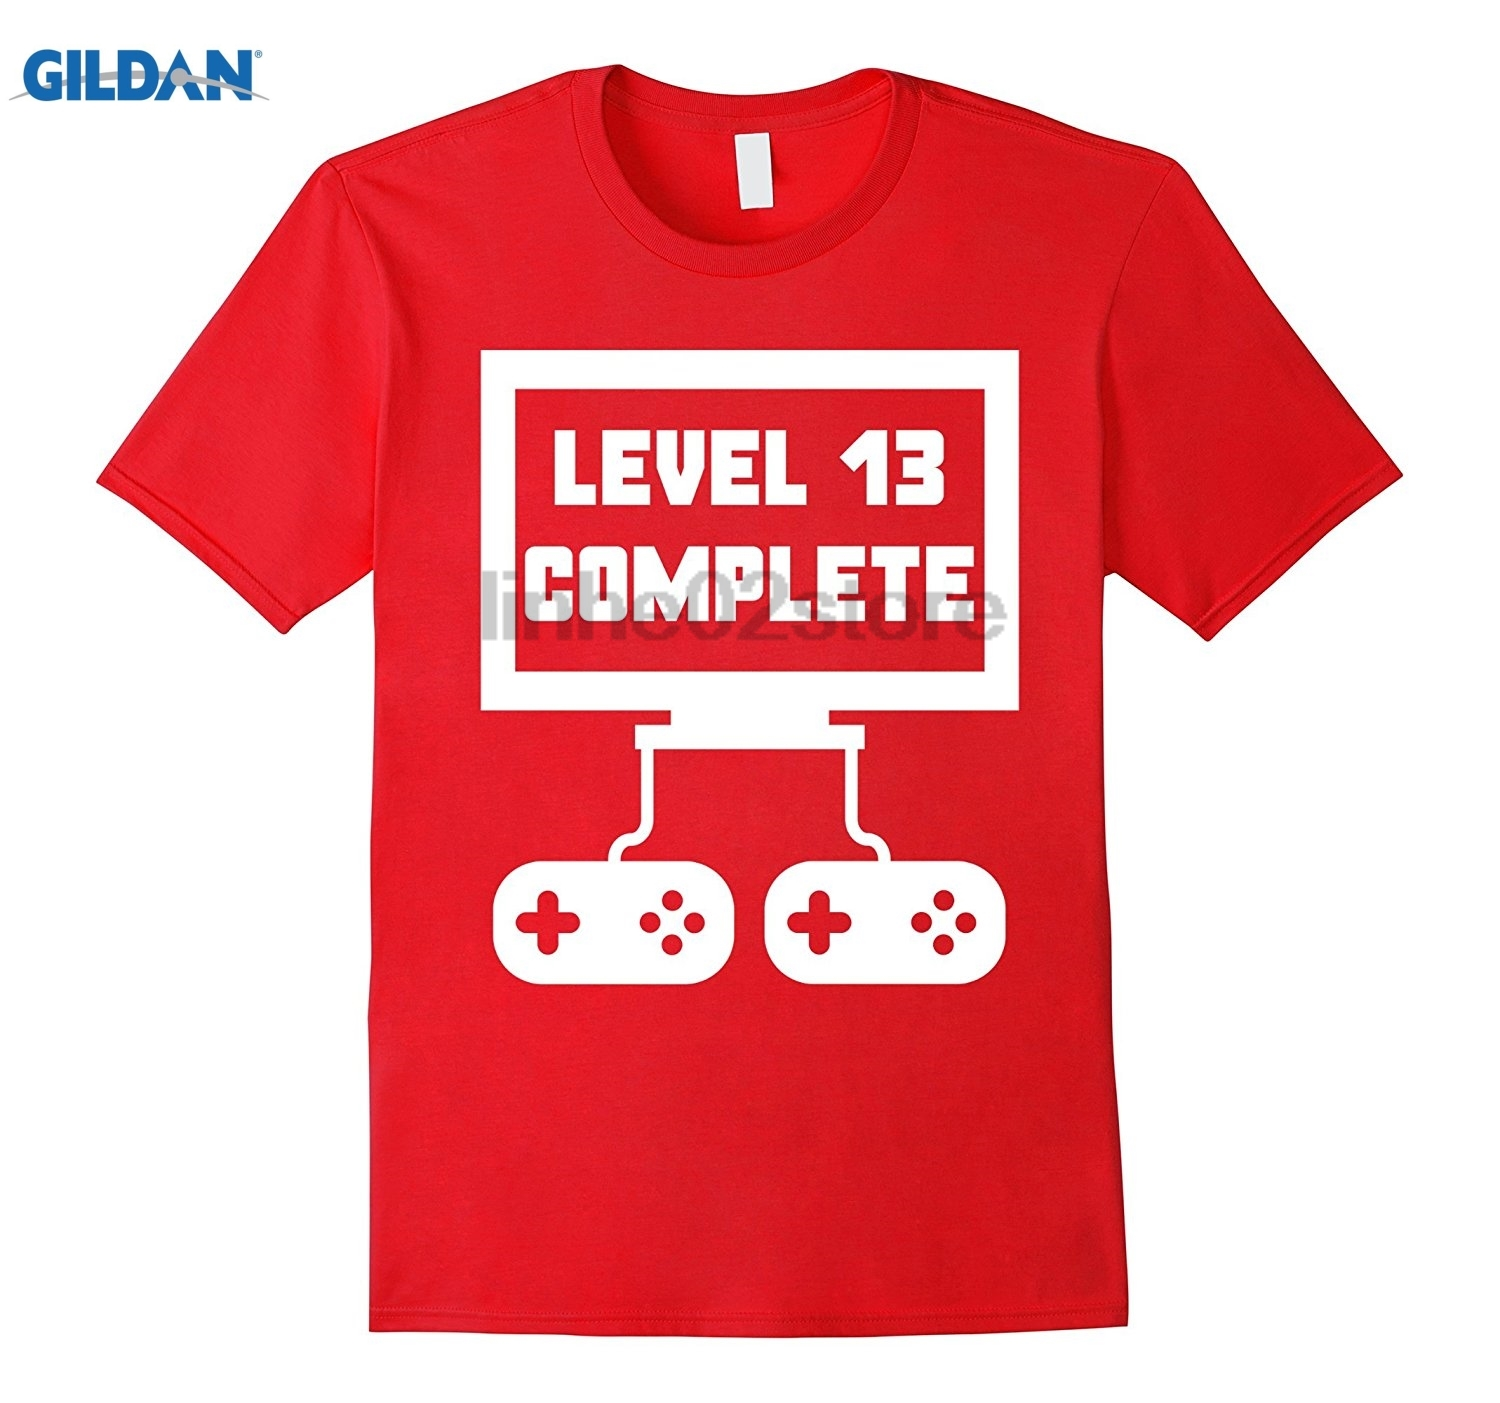 GILDAN Level 13 Complete Video Games Funny 13th Birthday T-Shirt sunglasses women T-shir ...